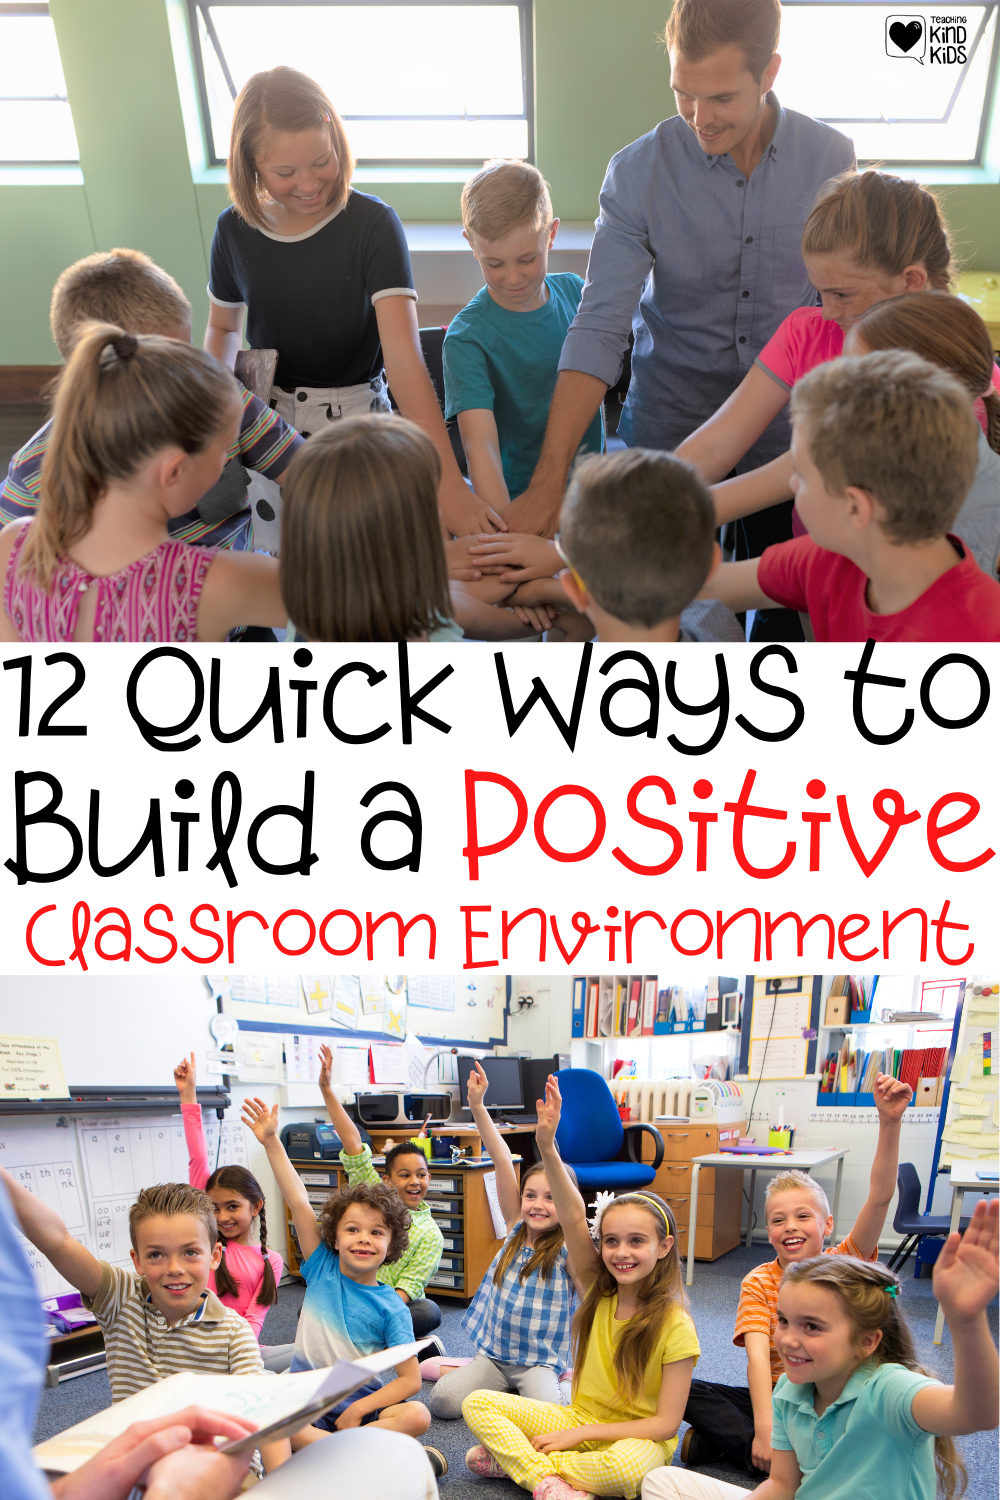 Teachers: Use these 12 quick ways to build a positive classroom enviornment in under 5 minutes so there's more kindness, less bullying and students feel connected and safe to learn